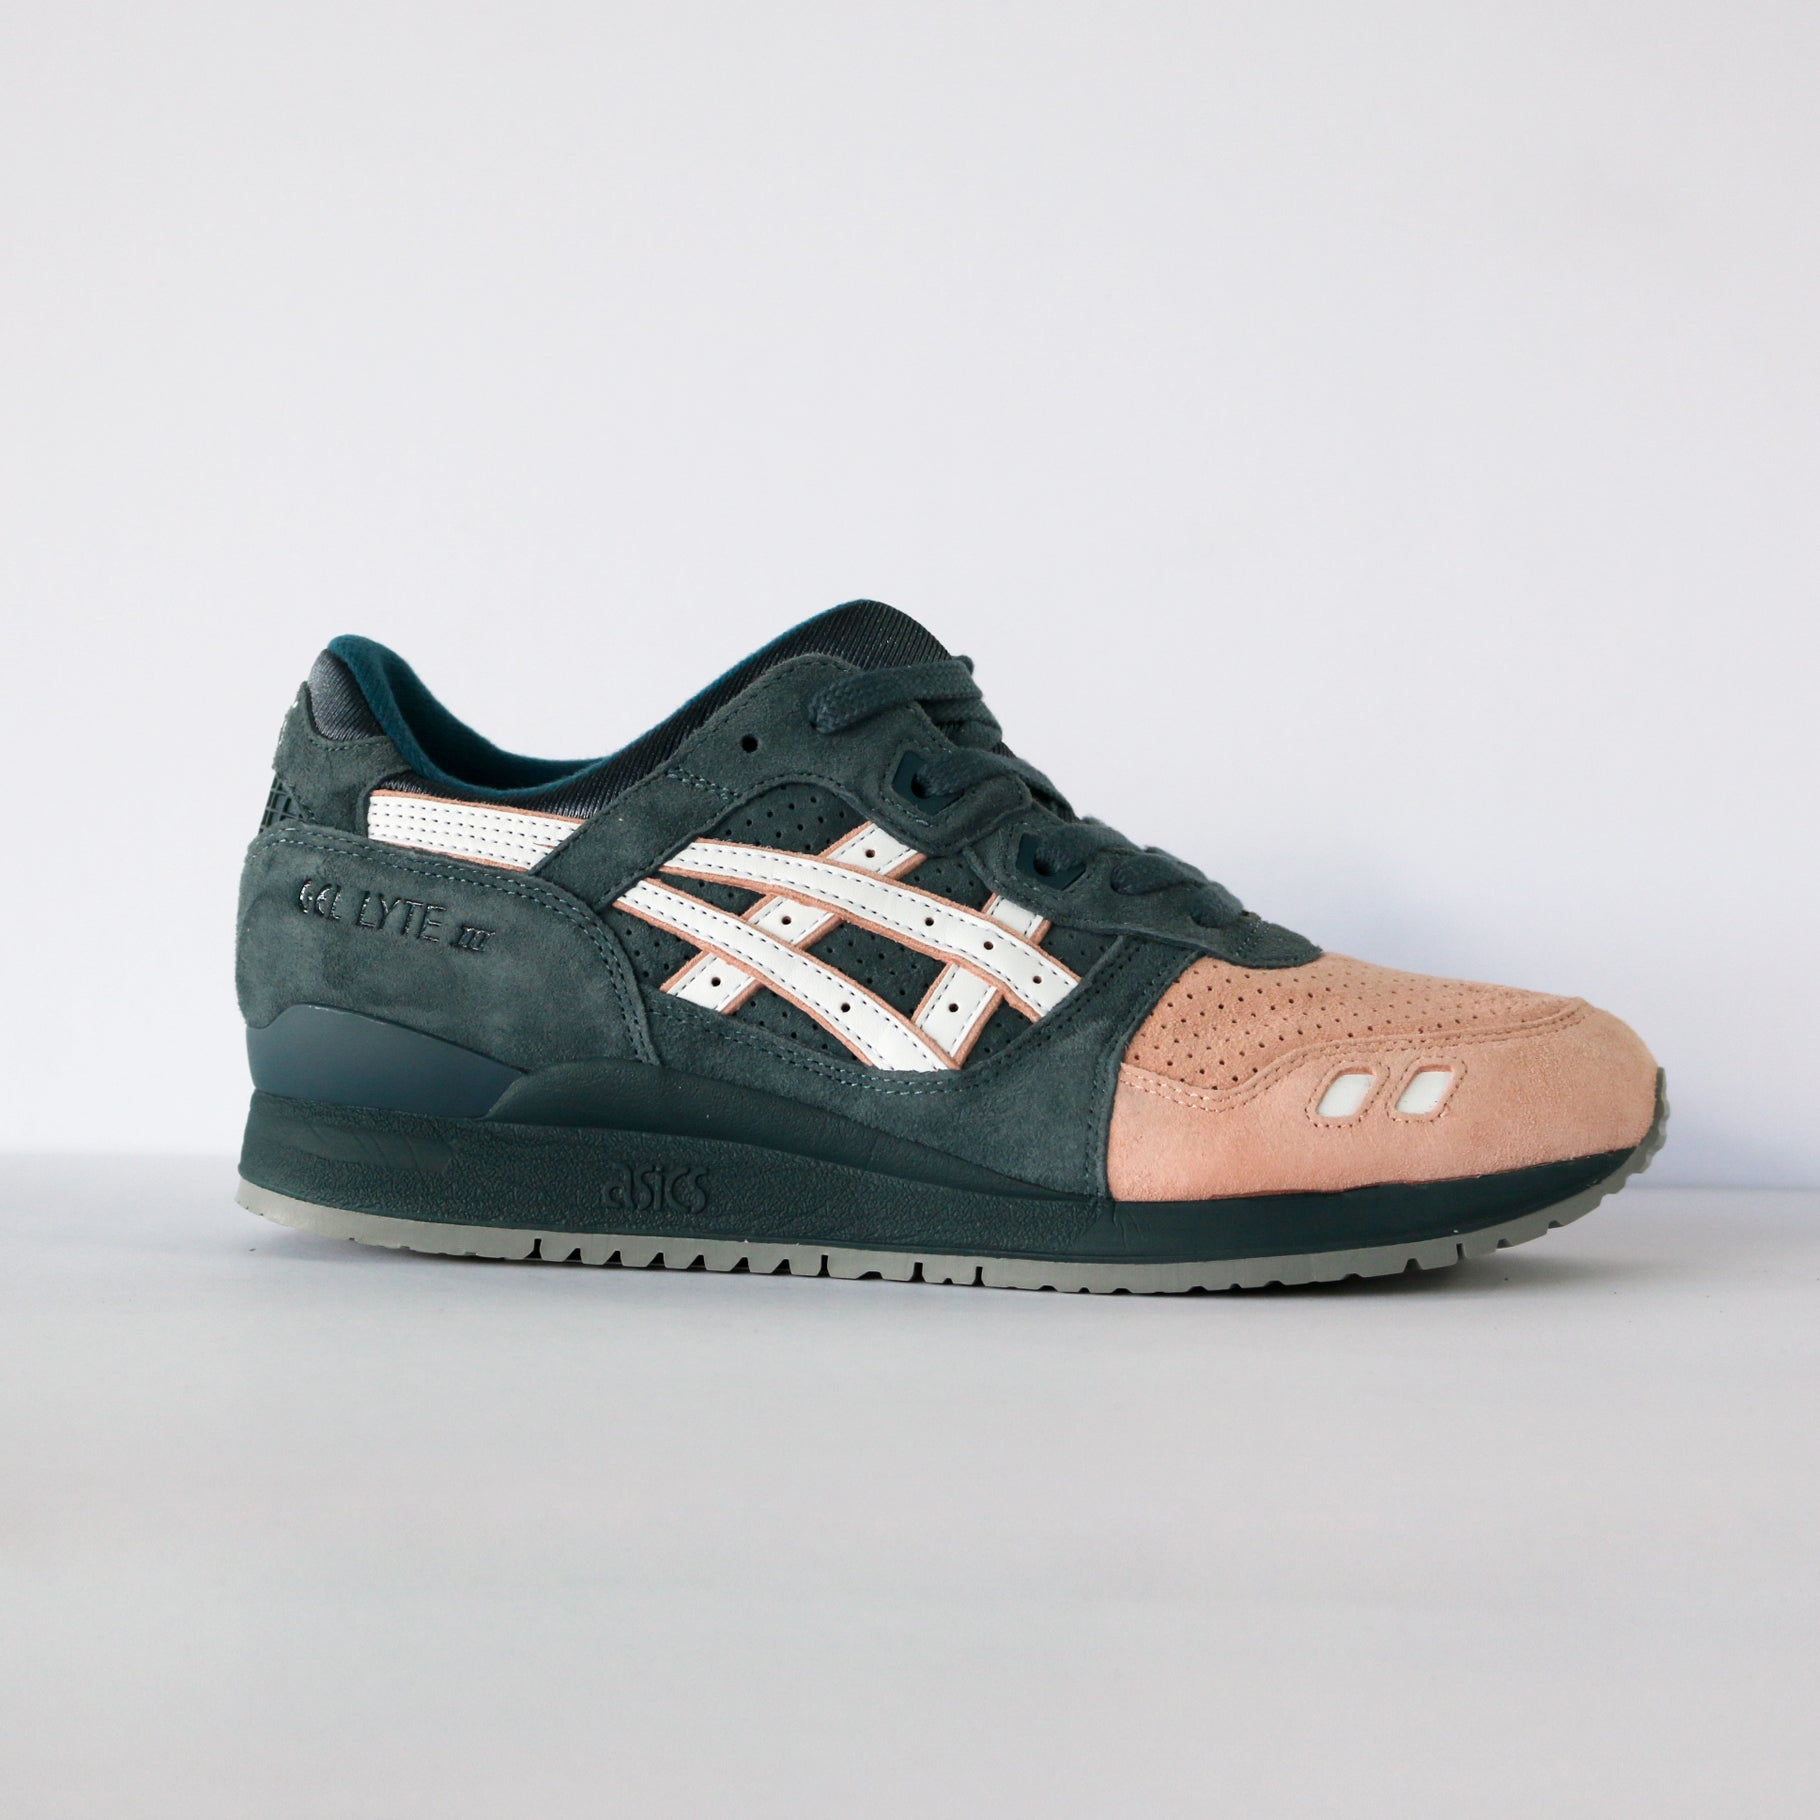 "Asics Gel Lyte III Ronnie Fieg ""Salmon Toe"" 2.0 (With Special Box)"